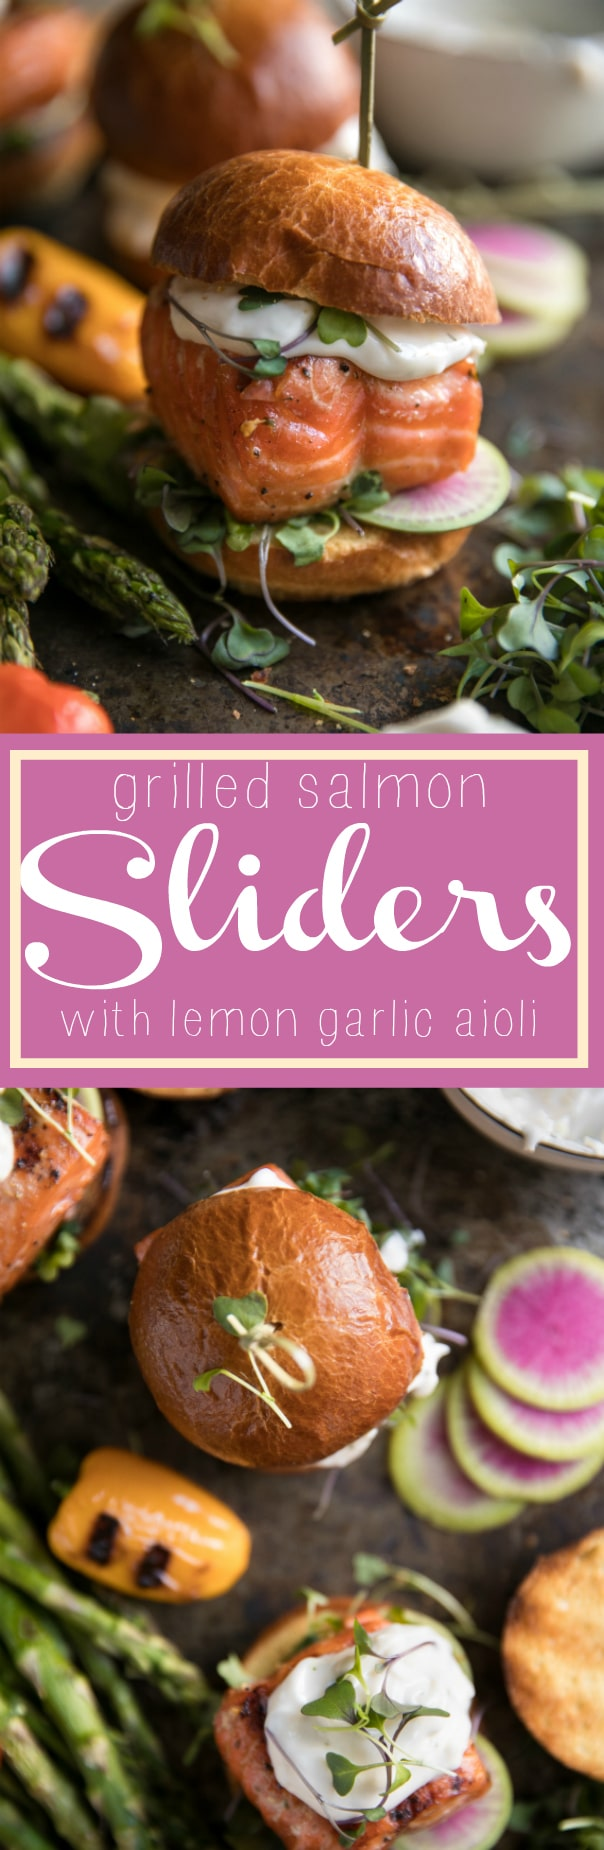 Grilled Salmon Burgers with Garlic Lemon Aioli via @theforkedspoon #ad #sliders #salmon #burgers #aioli #sandwich #fish #grilled #easyrecipe @philipshome